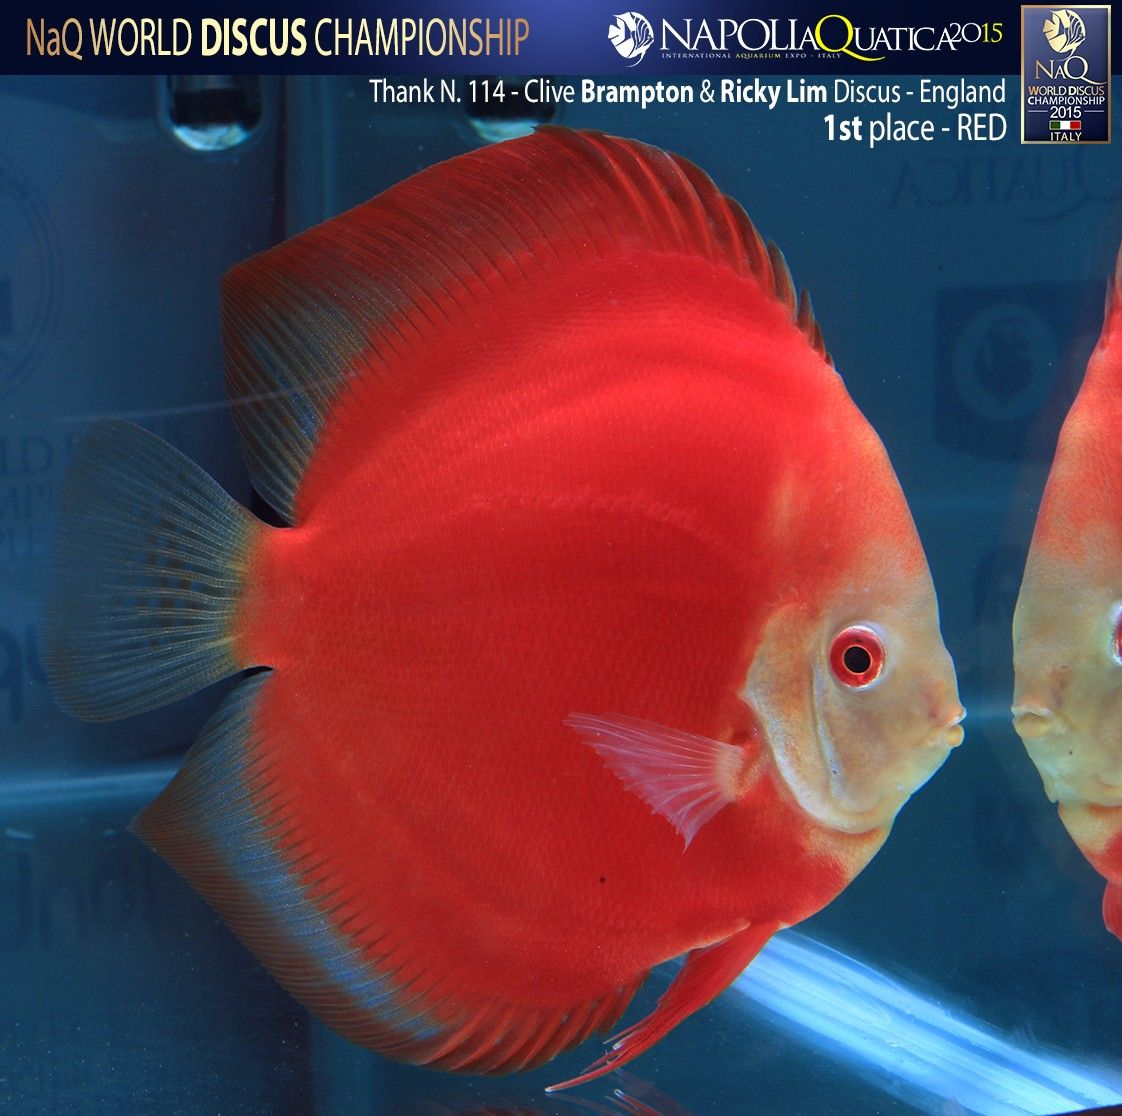 Pin by bülent erutku on discus | Pinterest | Discus and Aquariums